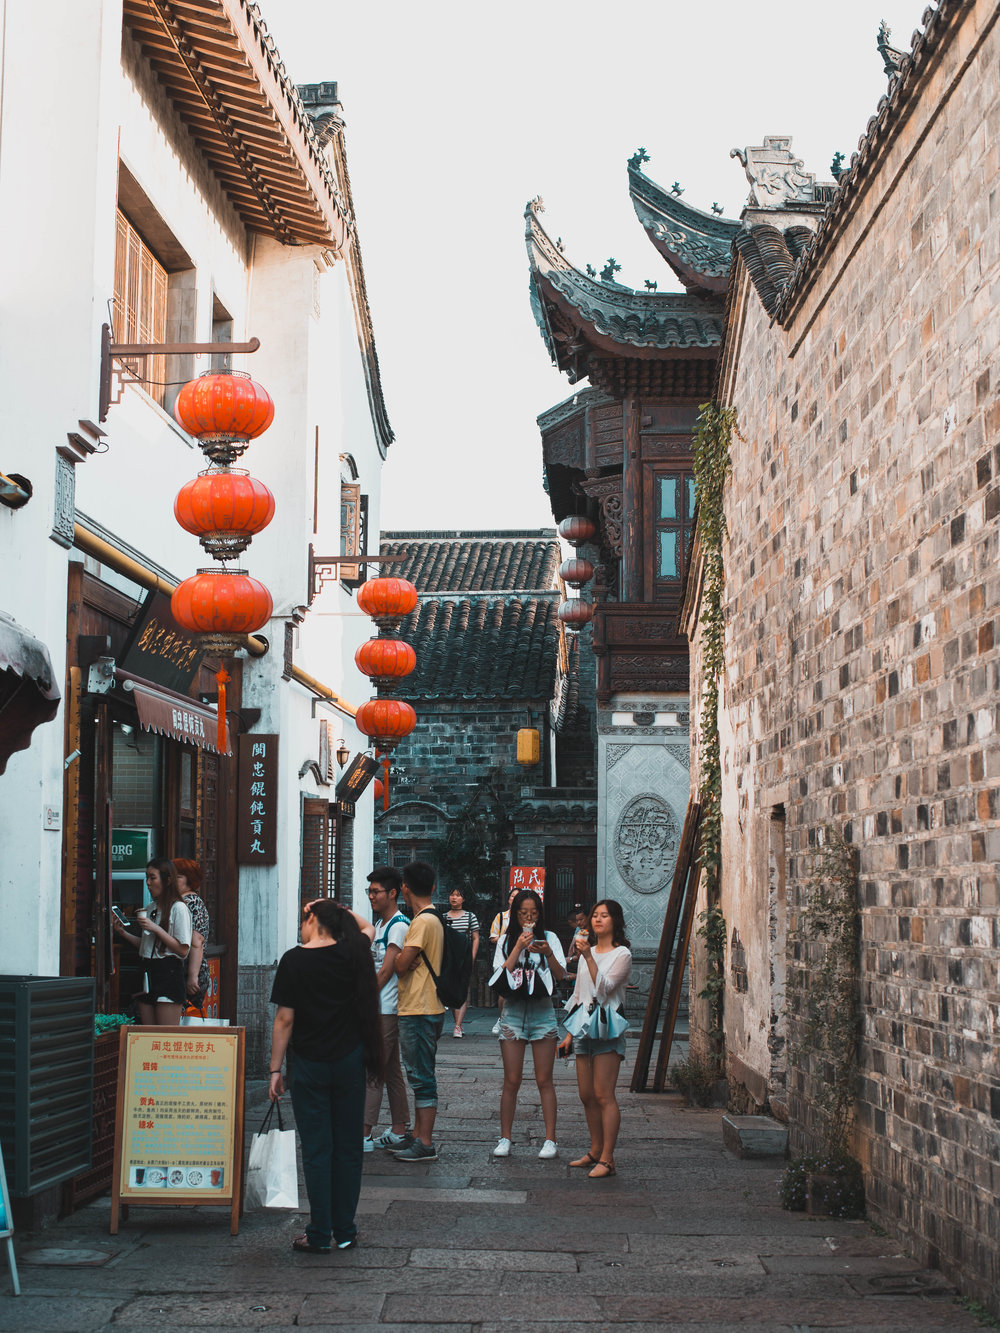 Walking the streets of Fuzimiao was one of my favorite things to do